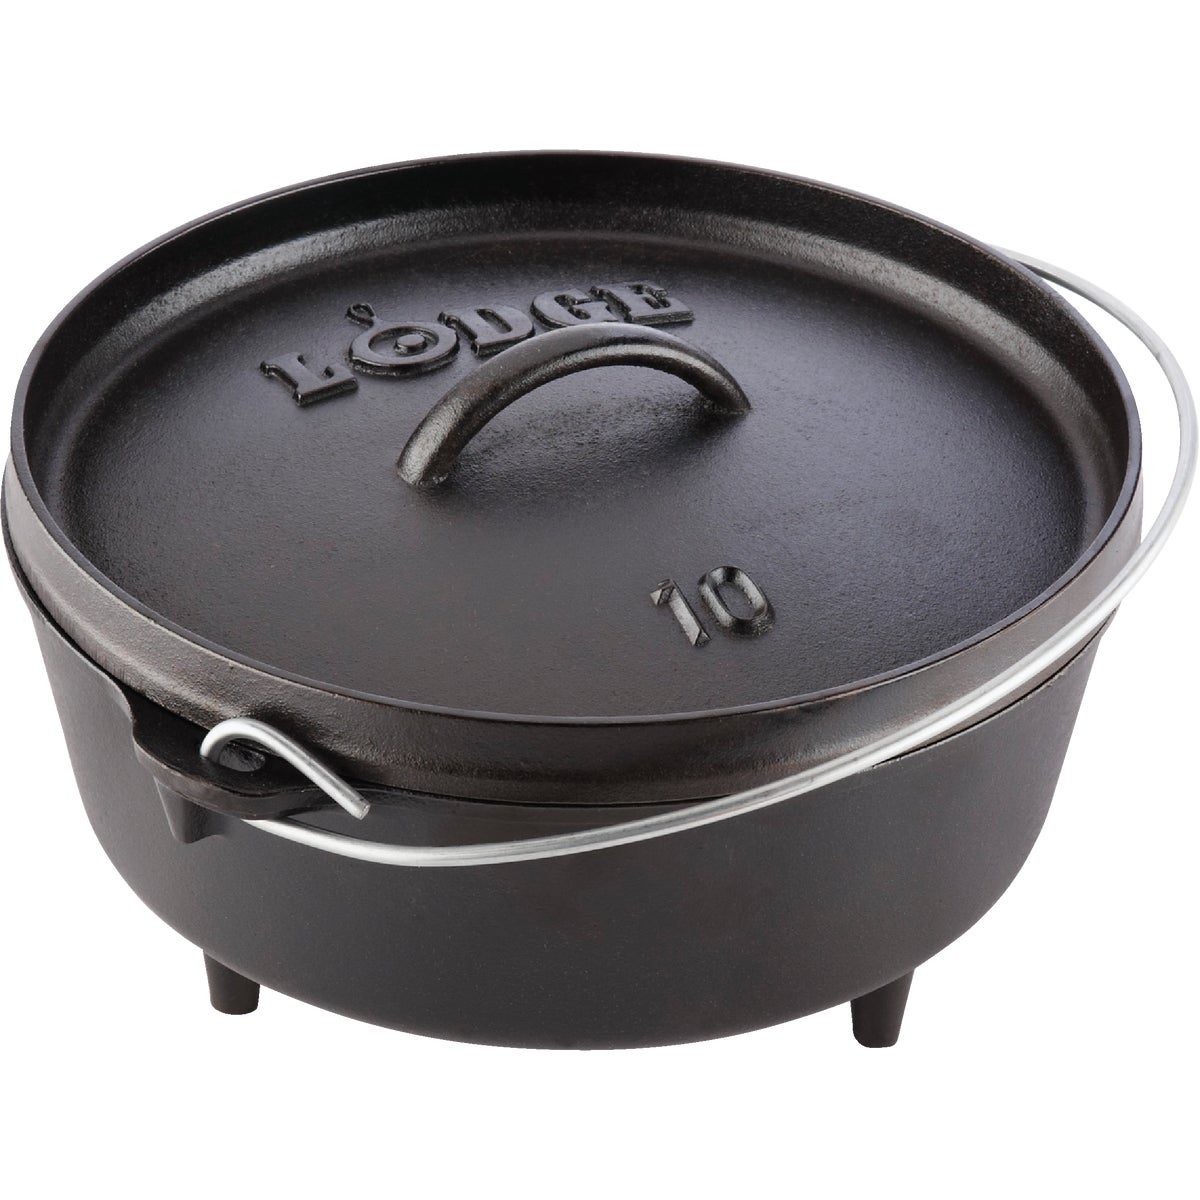 4QT CAMP OVEN - L10C03 by Lodge Mfg Co